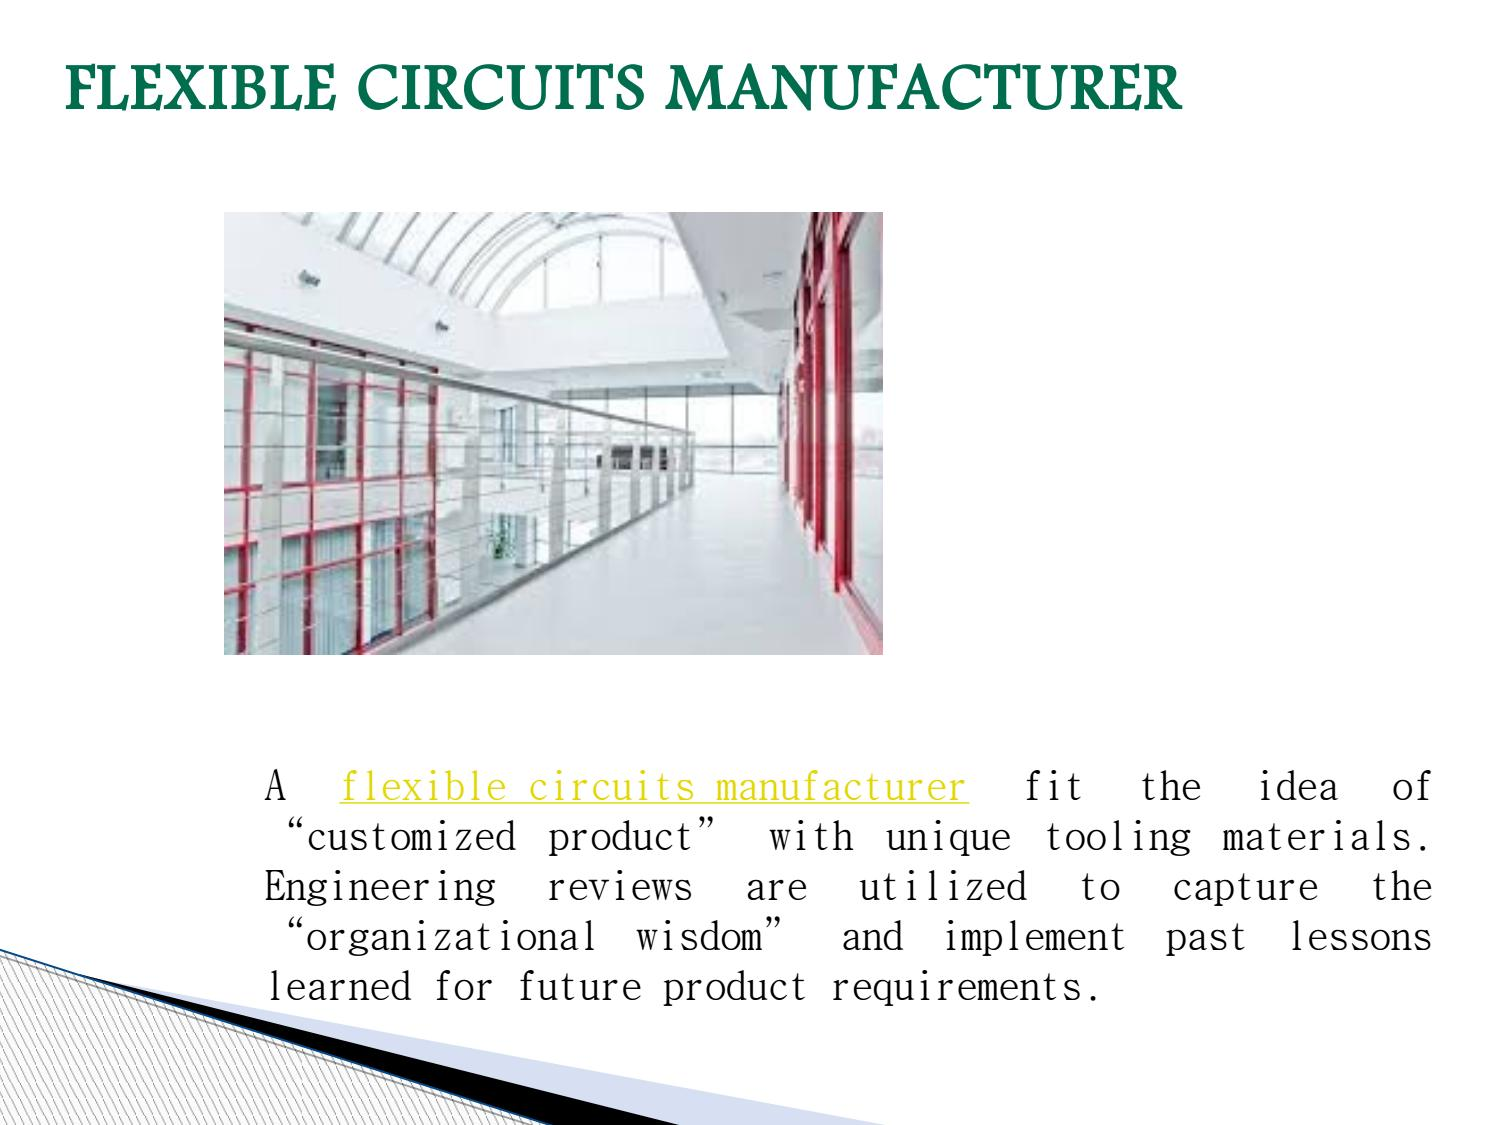 Flexible circuits manufacturer by Kevin Bullington - issuu